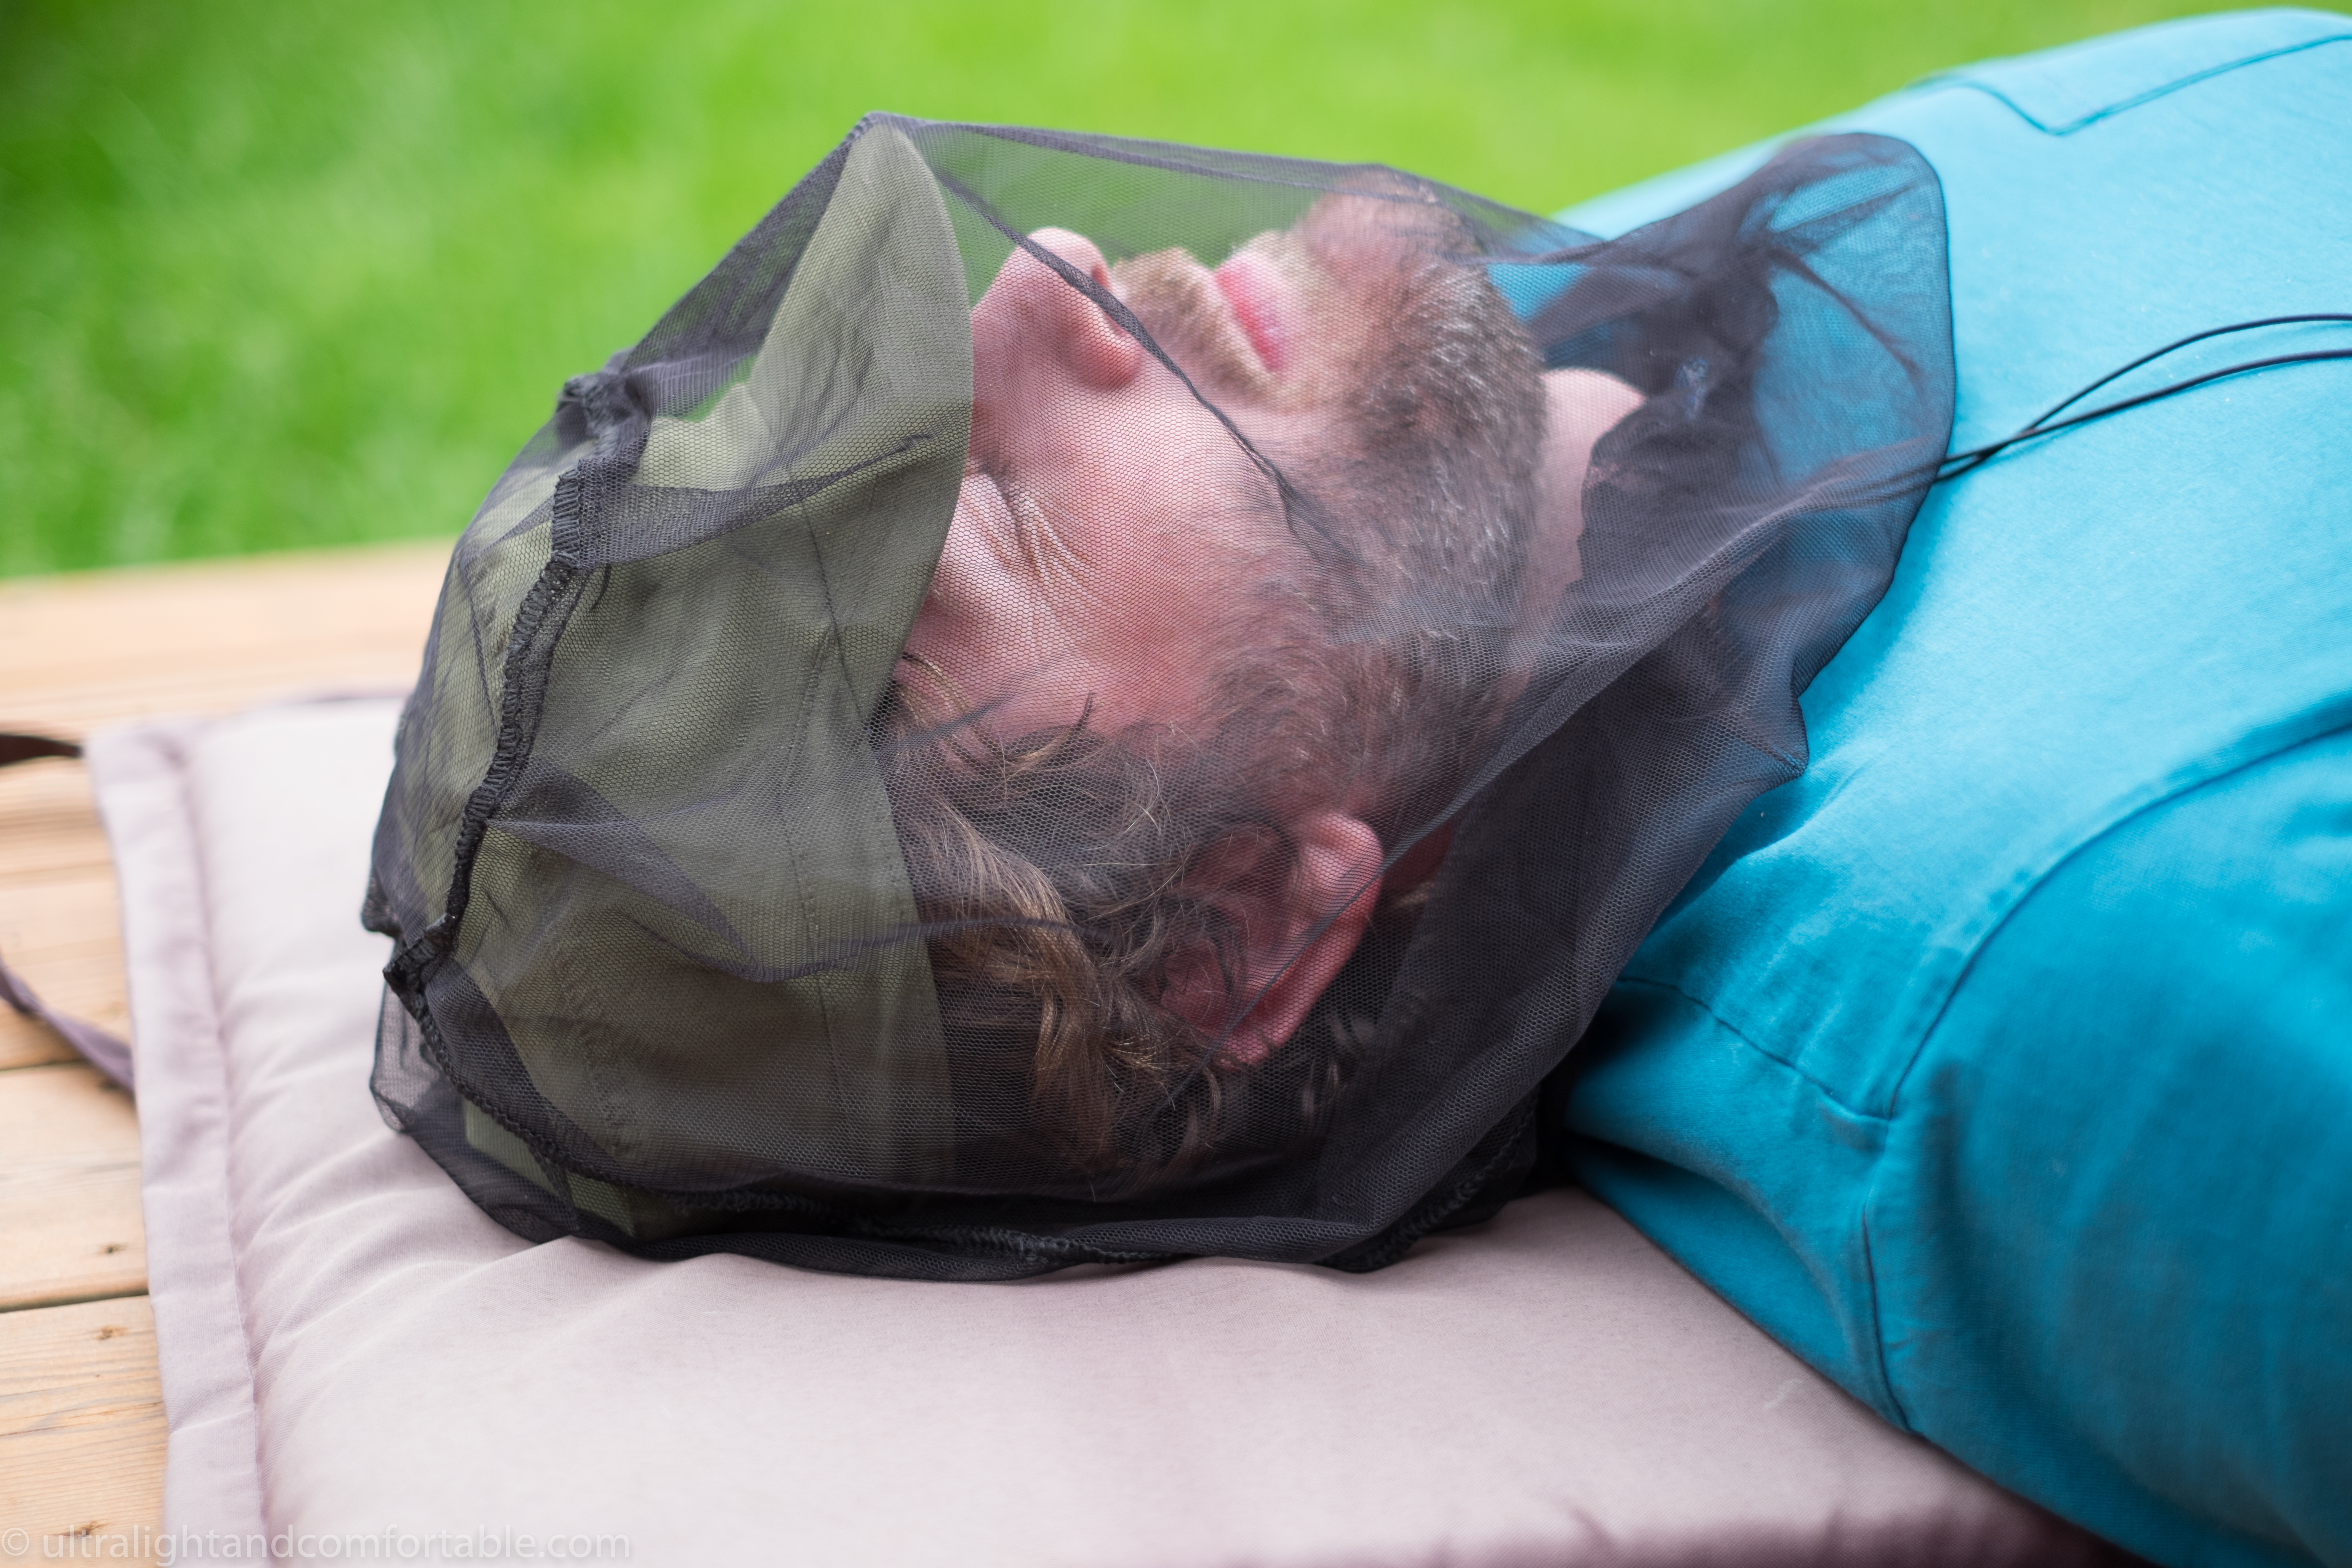 When I donu0027t feel like bringing a proper tent or bug net I find sleeping like this is perfectly fine. & The Humble mosquito head net.. and all itu0027s uses u2013 Ultralight and ...